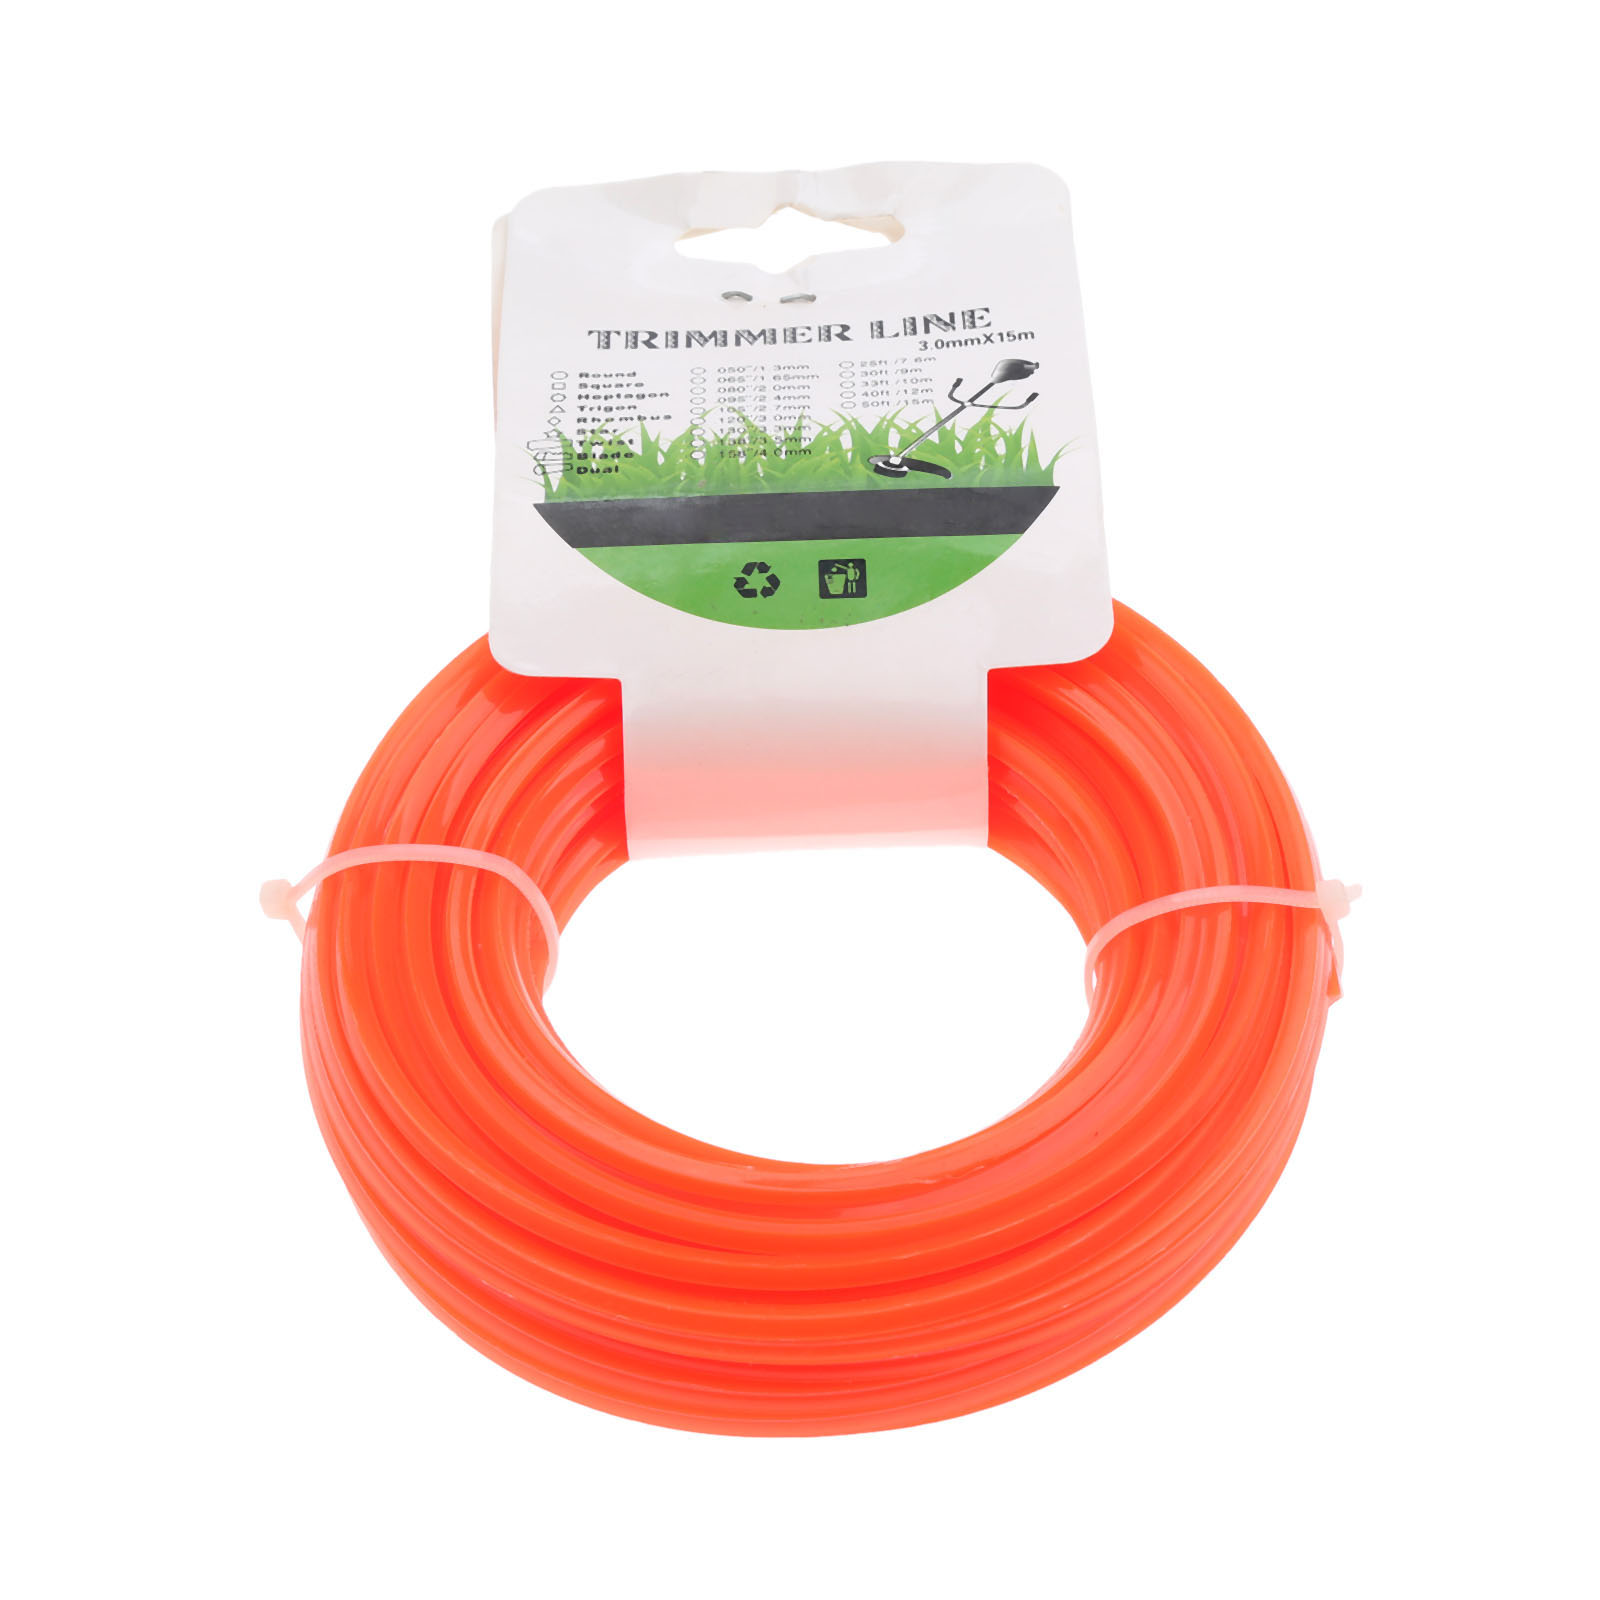 DRELD 3mmx15m Nylon Trimmer Line Brush Cutter Spare Parts Garden Cord Wire String Grass Strimmer Line Garden Tool For Lawn Mower in Tool Parts from Tools